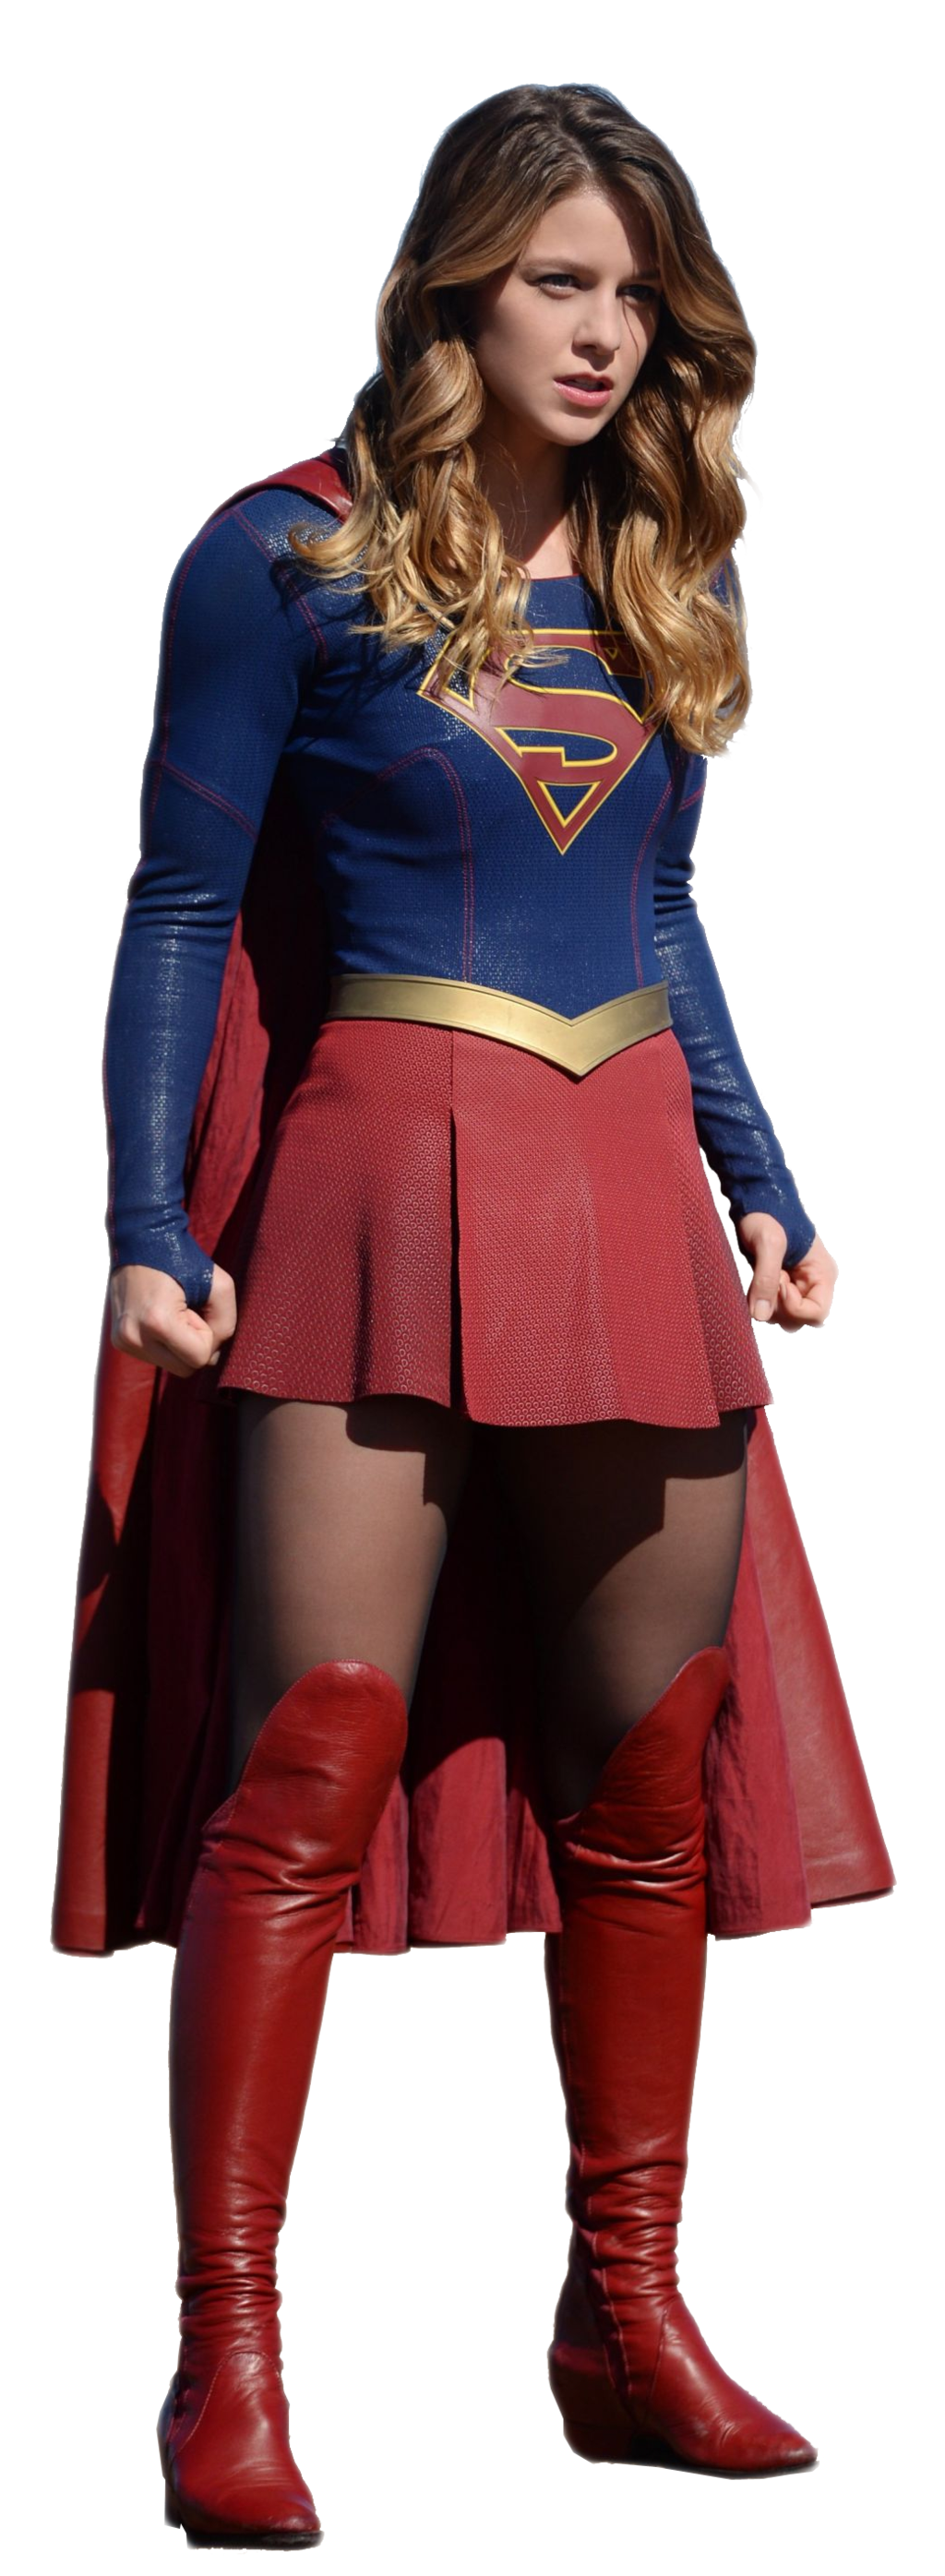 Buffy2ville 22 0 Supergirl PNG by Buffy2ville - Supergirl PNG